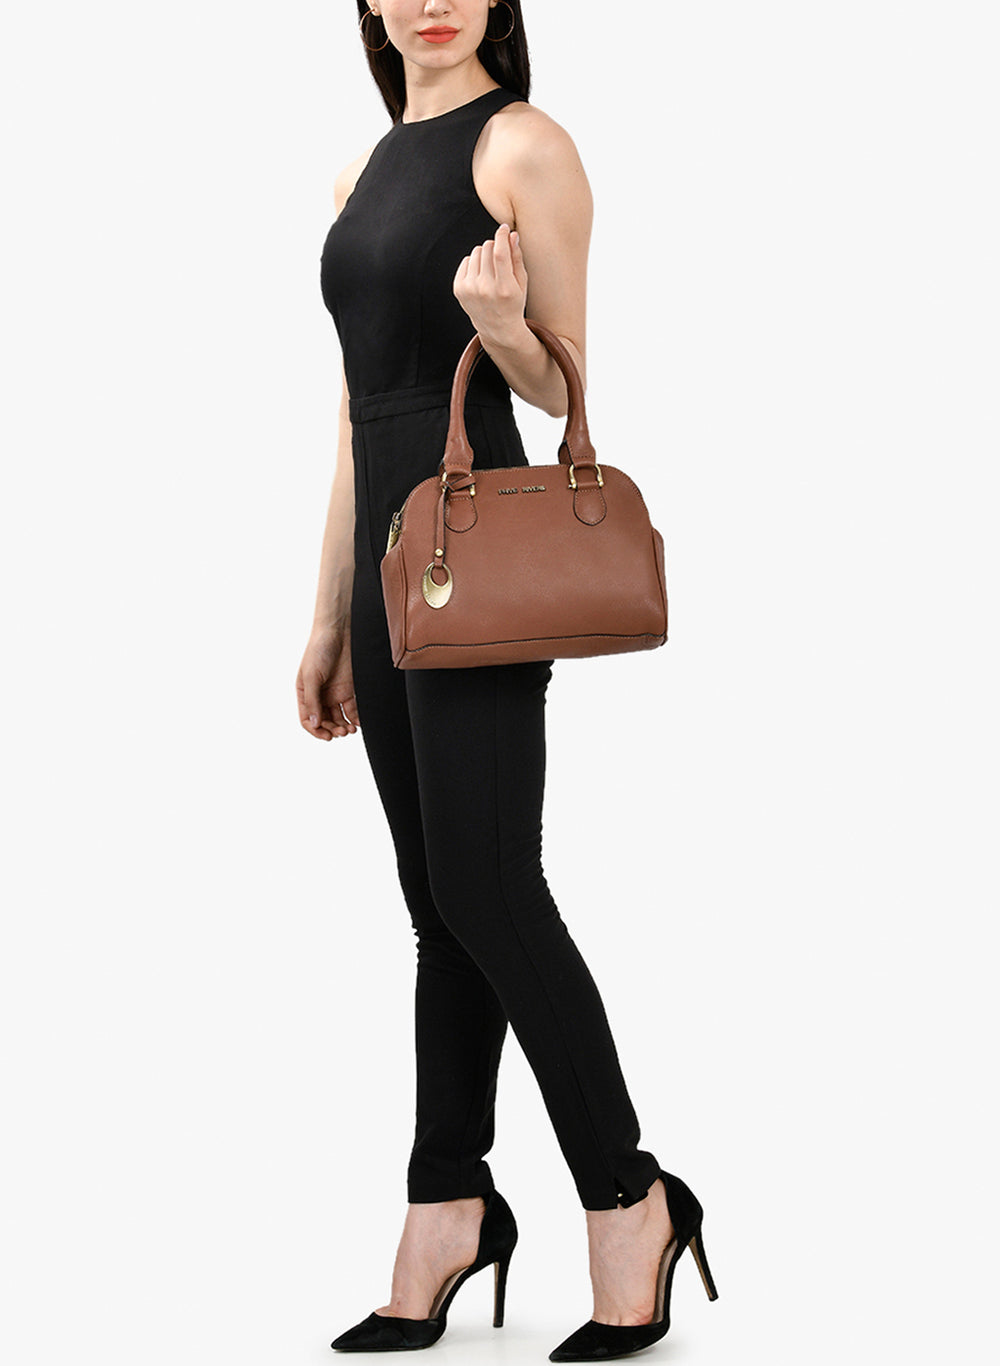 PR547-Phive Rivers Women's Leather HandBag (Tan_PR547)-Home > Bags > Handbags-Phive Rivers-Faeshon.com